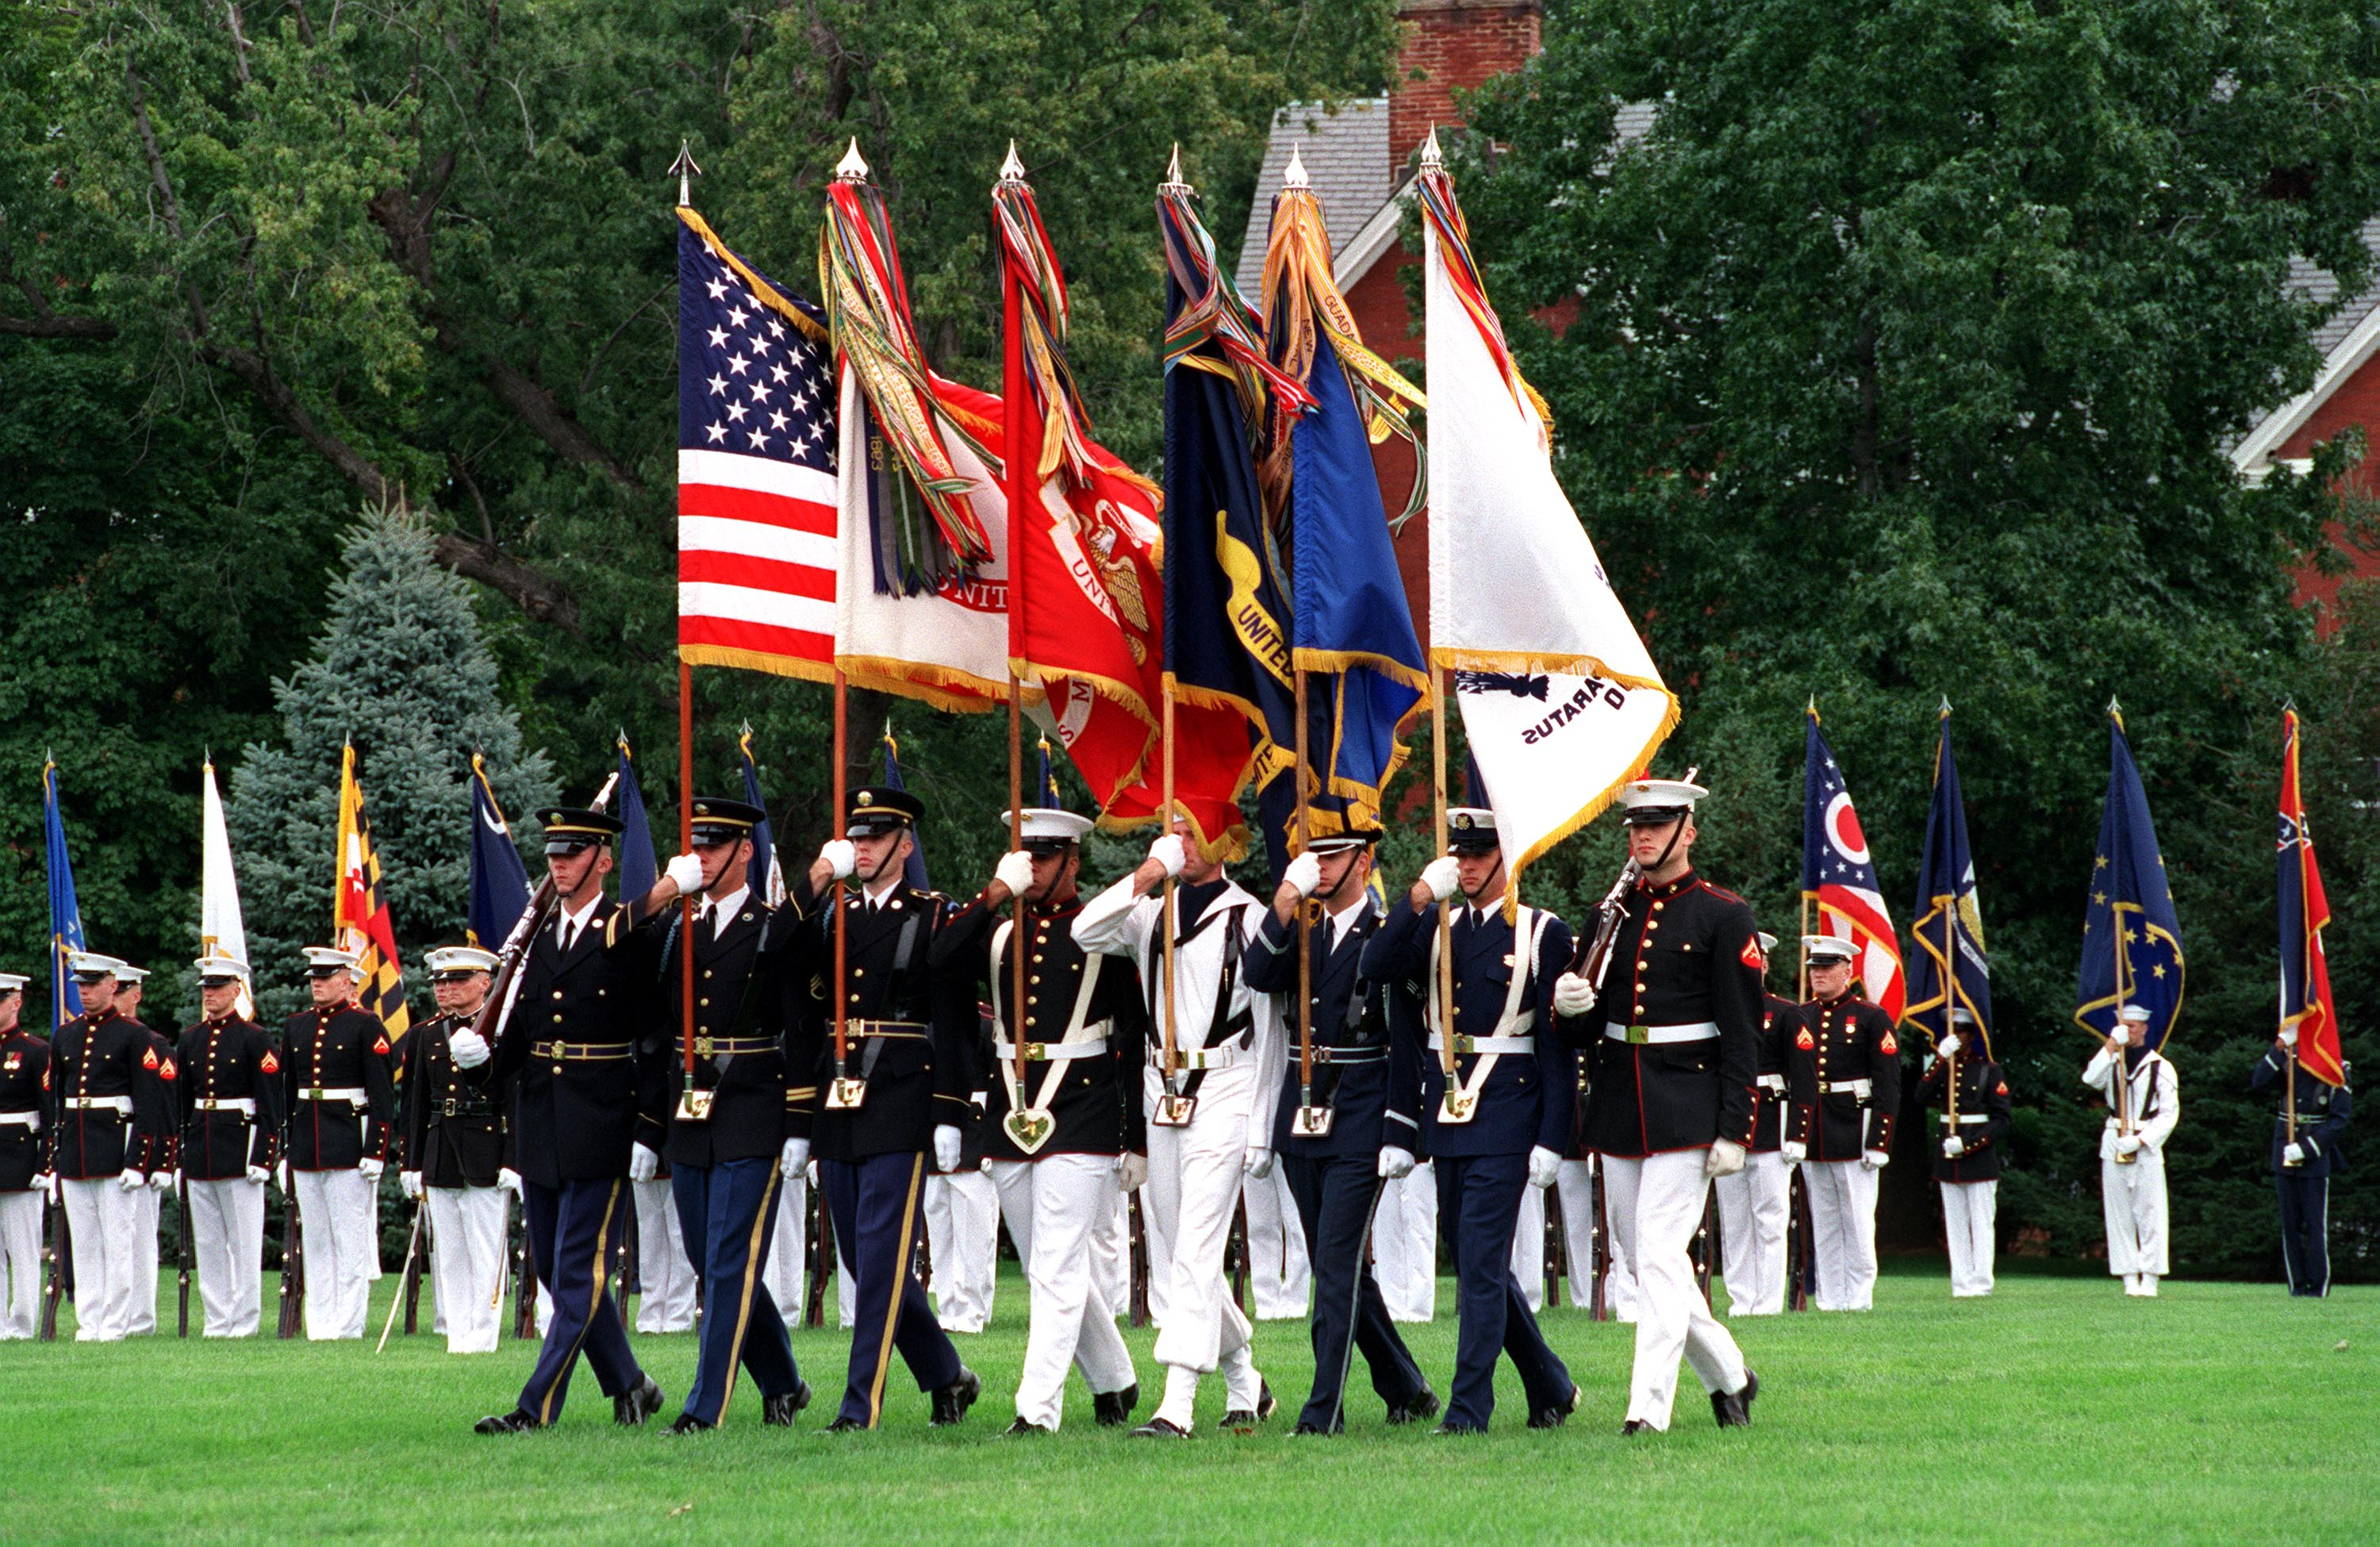 Flags of the United States Armed Forces - Wikipedia